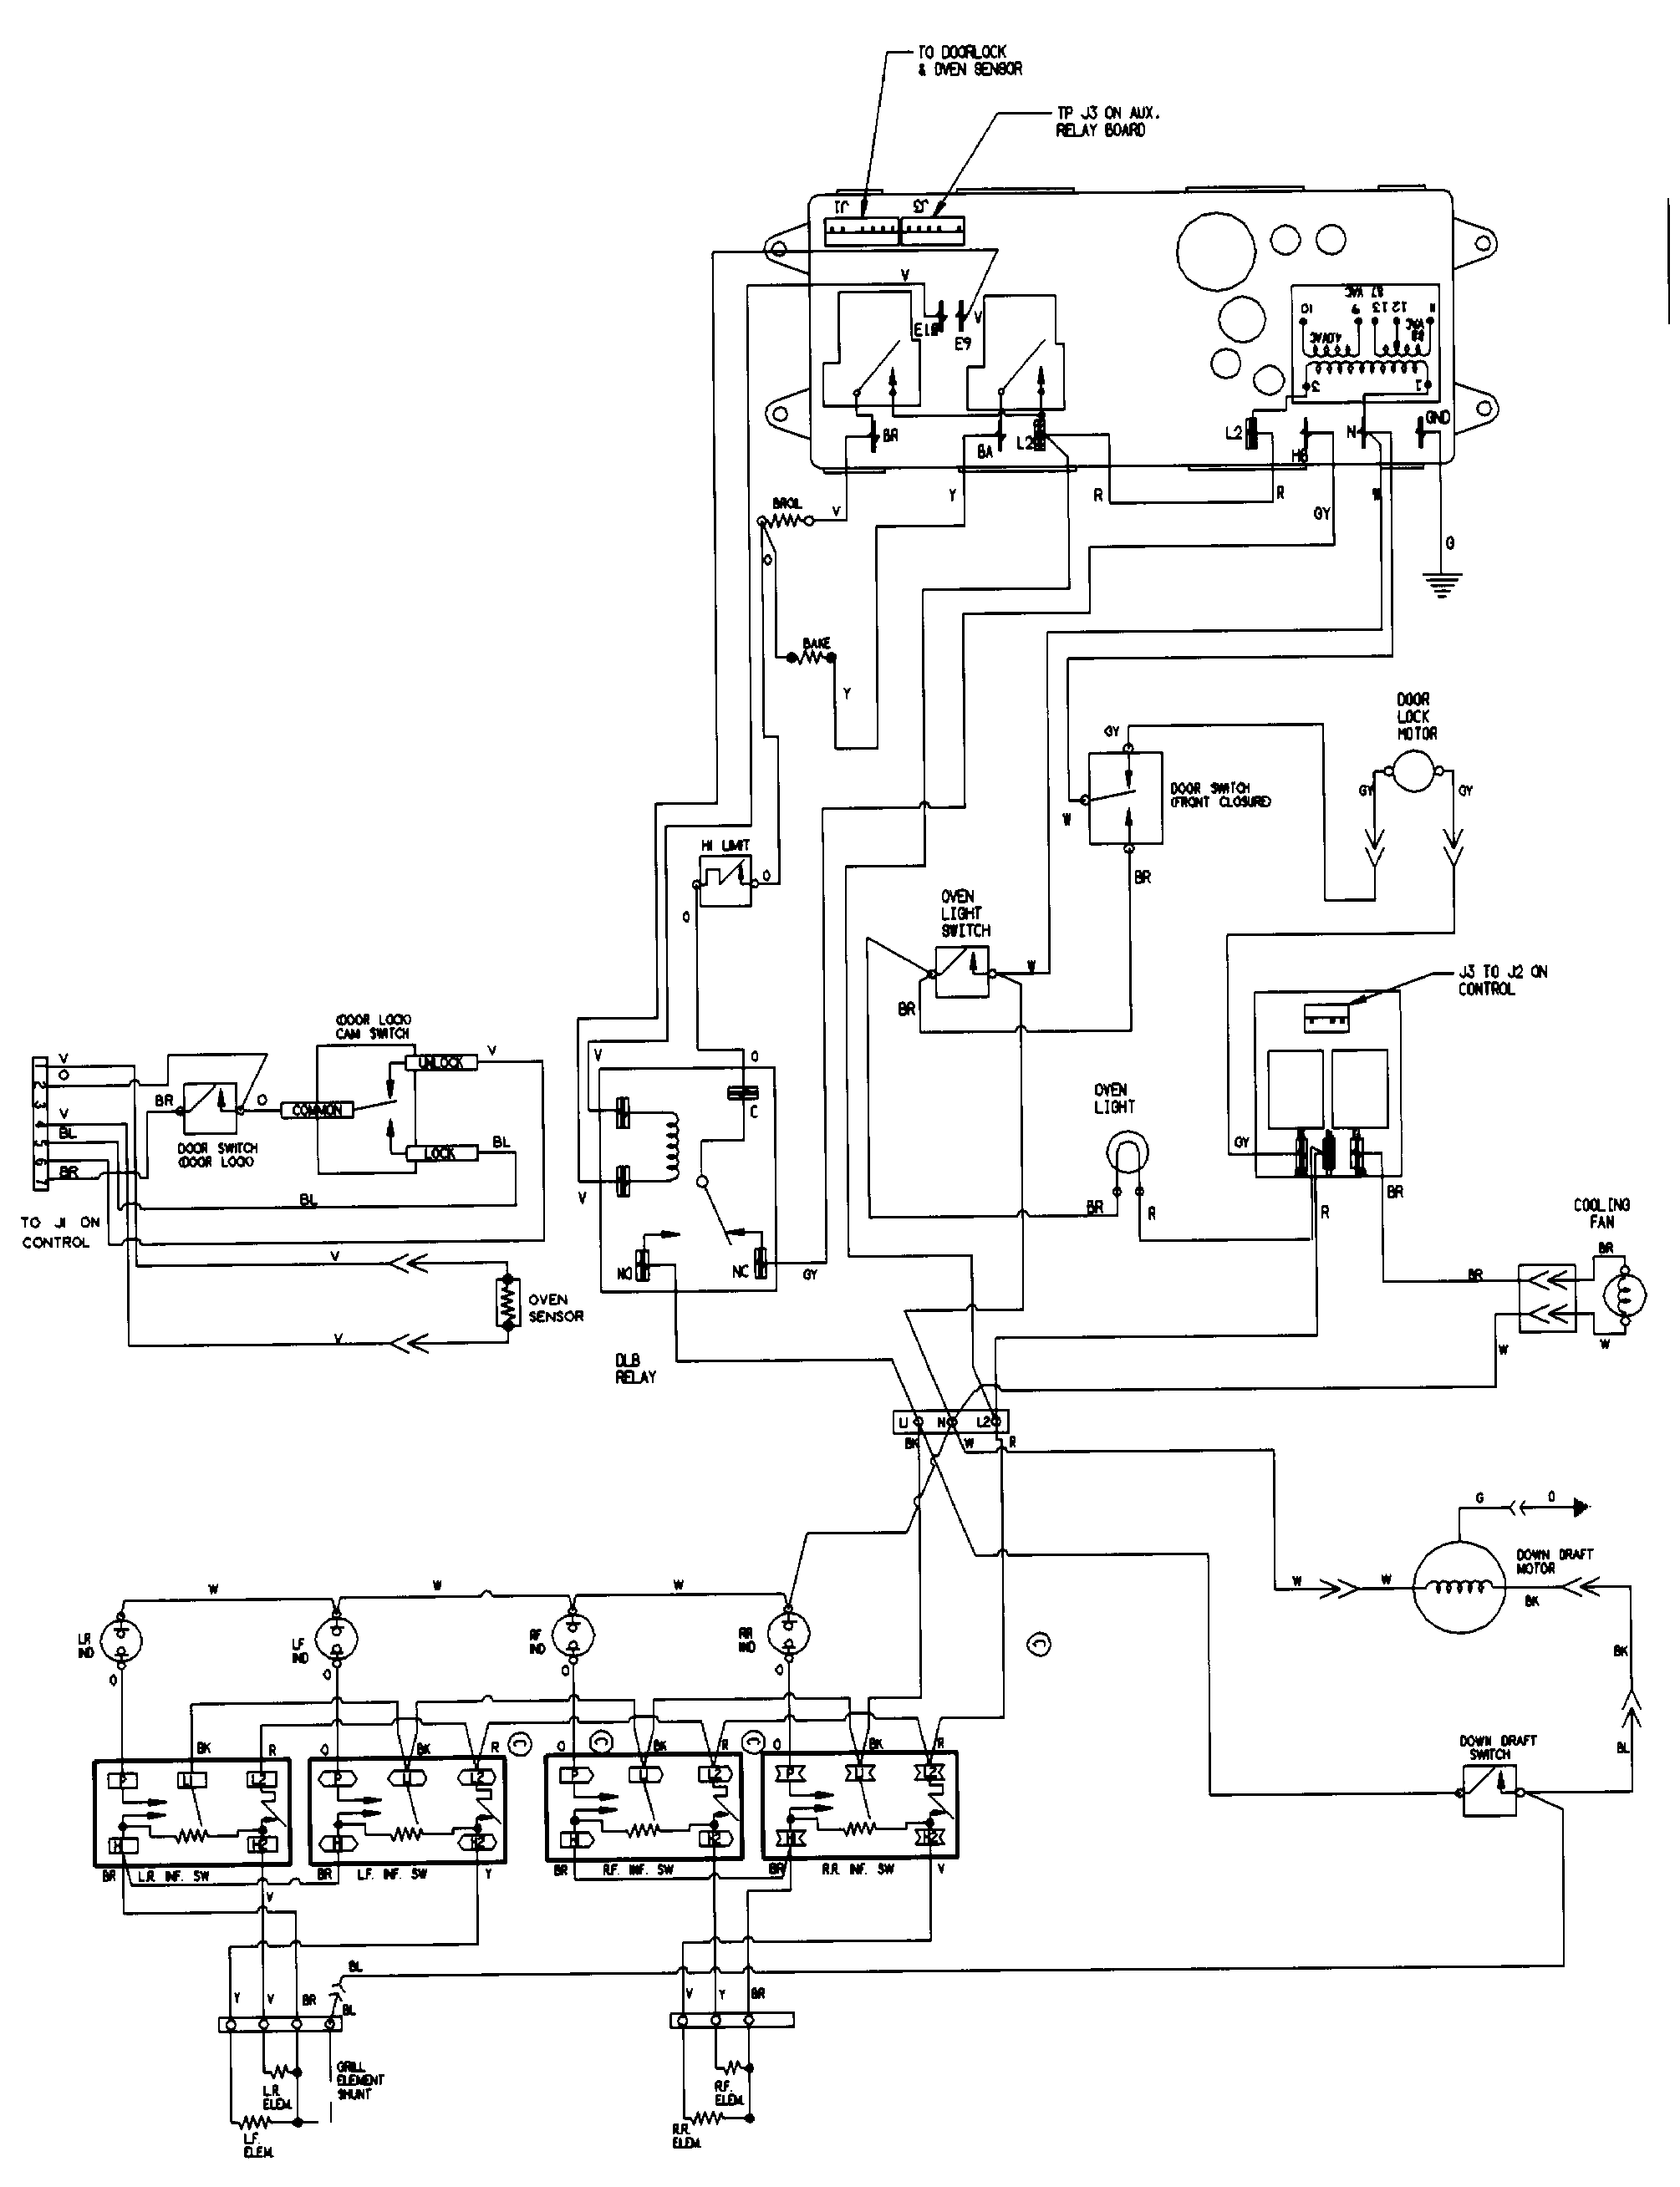 WRG-1178] Gas Fireplace Wiring Diagram on